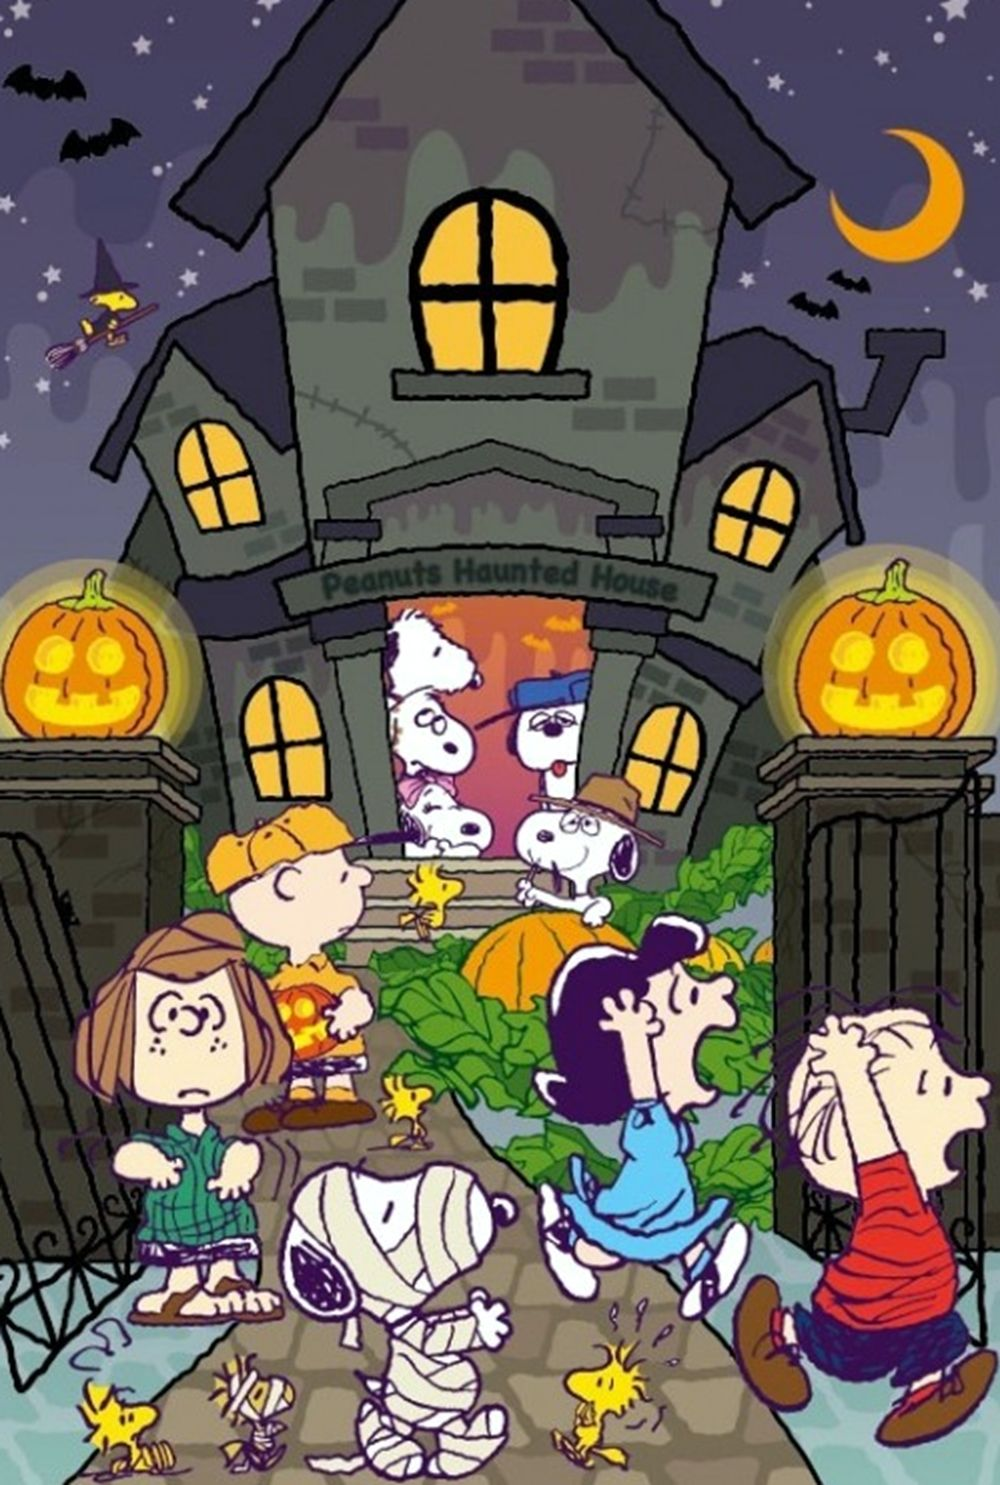 Peanuts halloween charlie brown snoopy snoopy - Snoopy halloween images ...